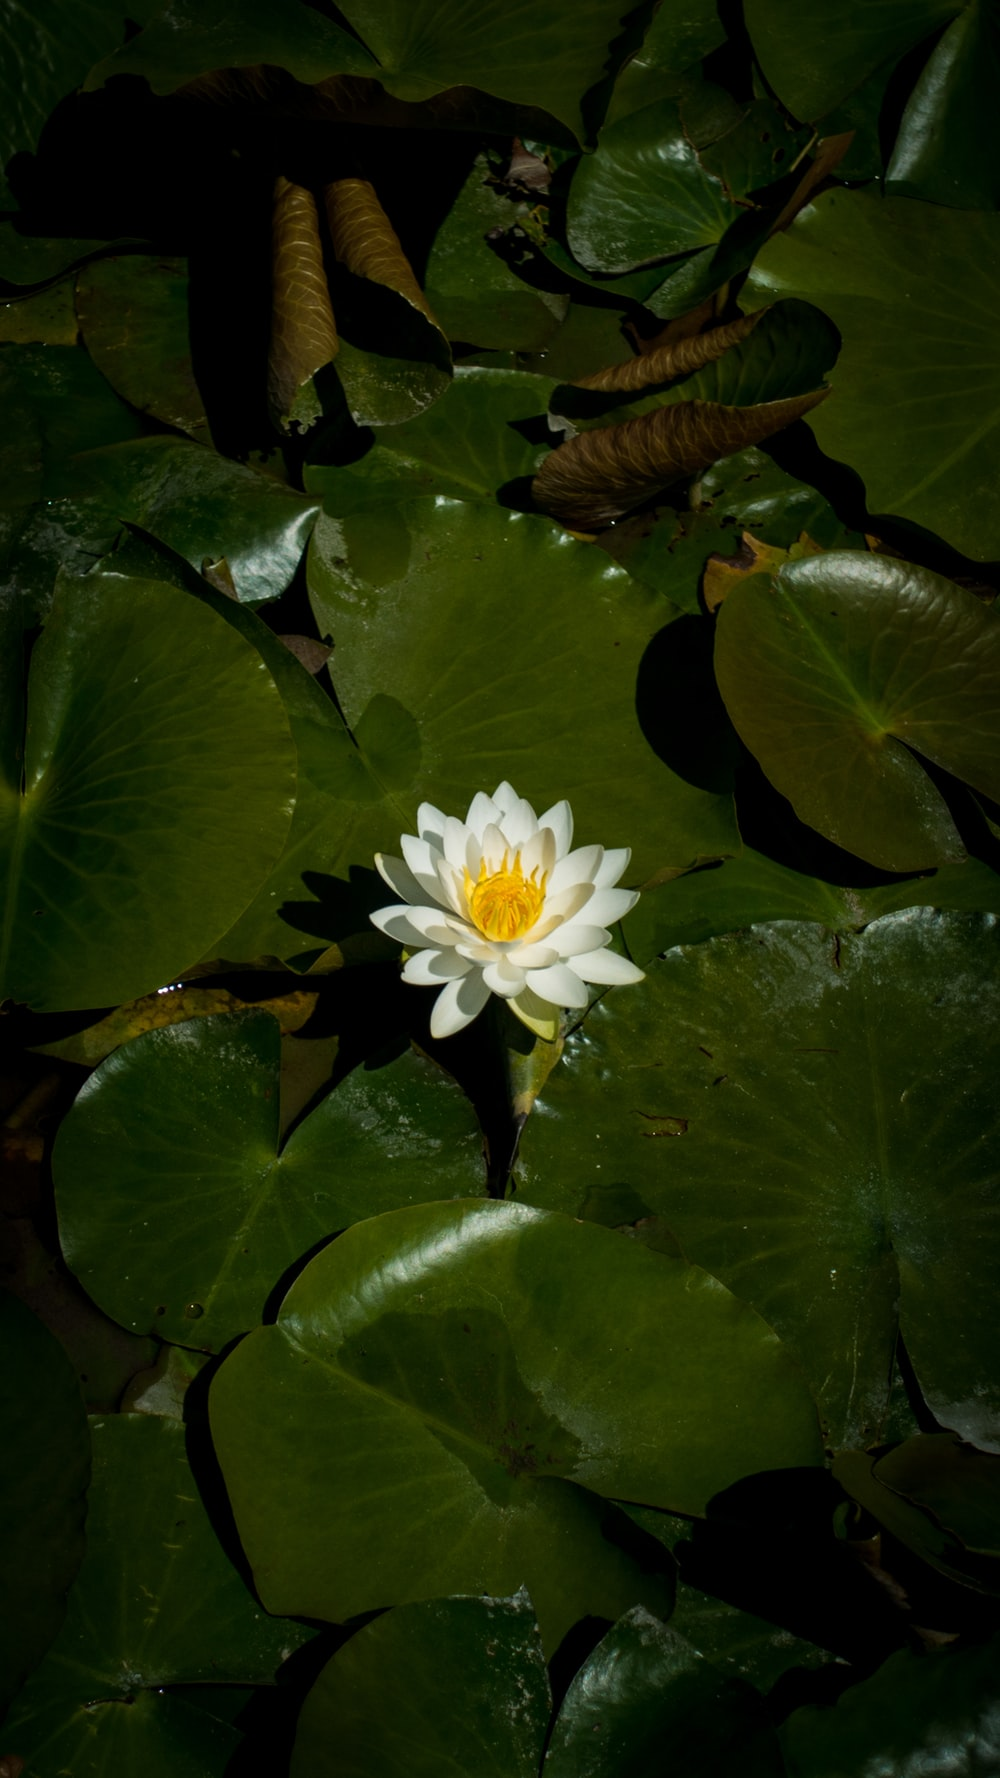 white lotus blooming during daytime